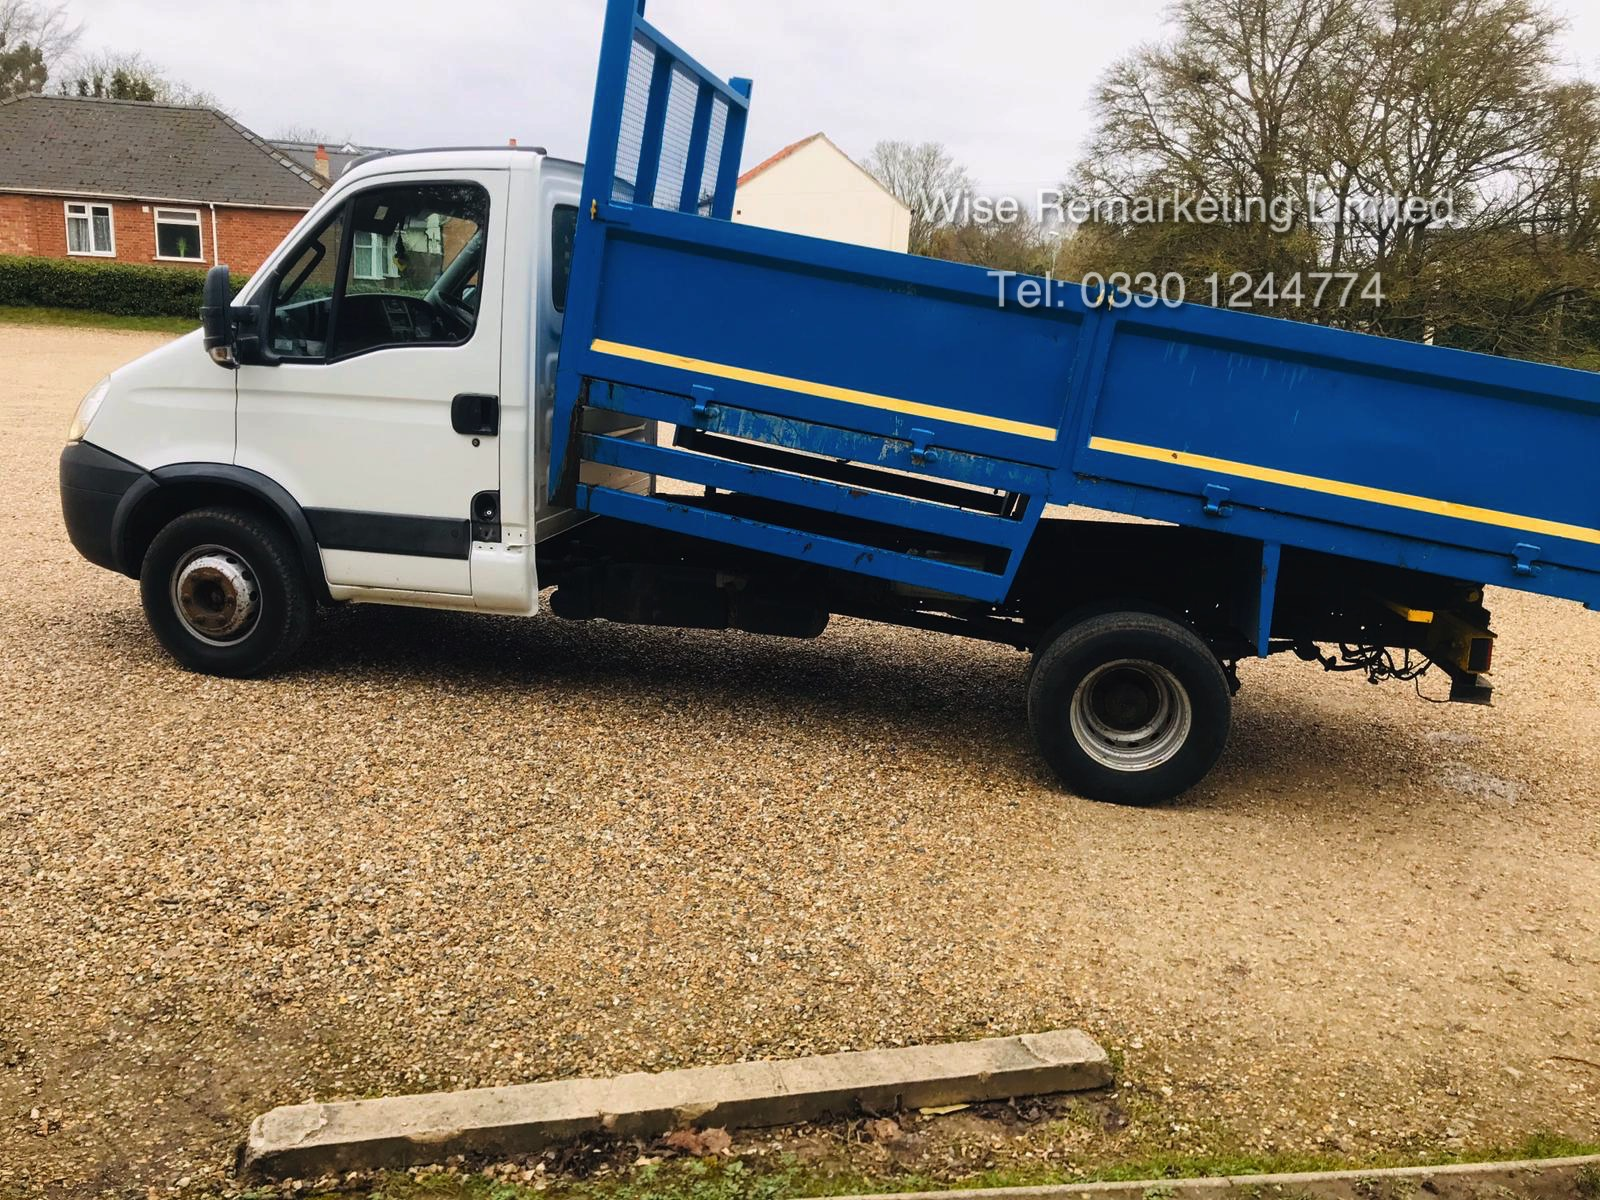 Iveco Daily 3.0 TD 60C18 Tipper (Twin Wheeler) - 6 Speed - 2011 Model - 1 Keeper SAVE 20% NO VAT - Image 7 of 18